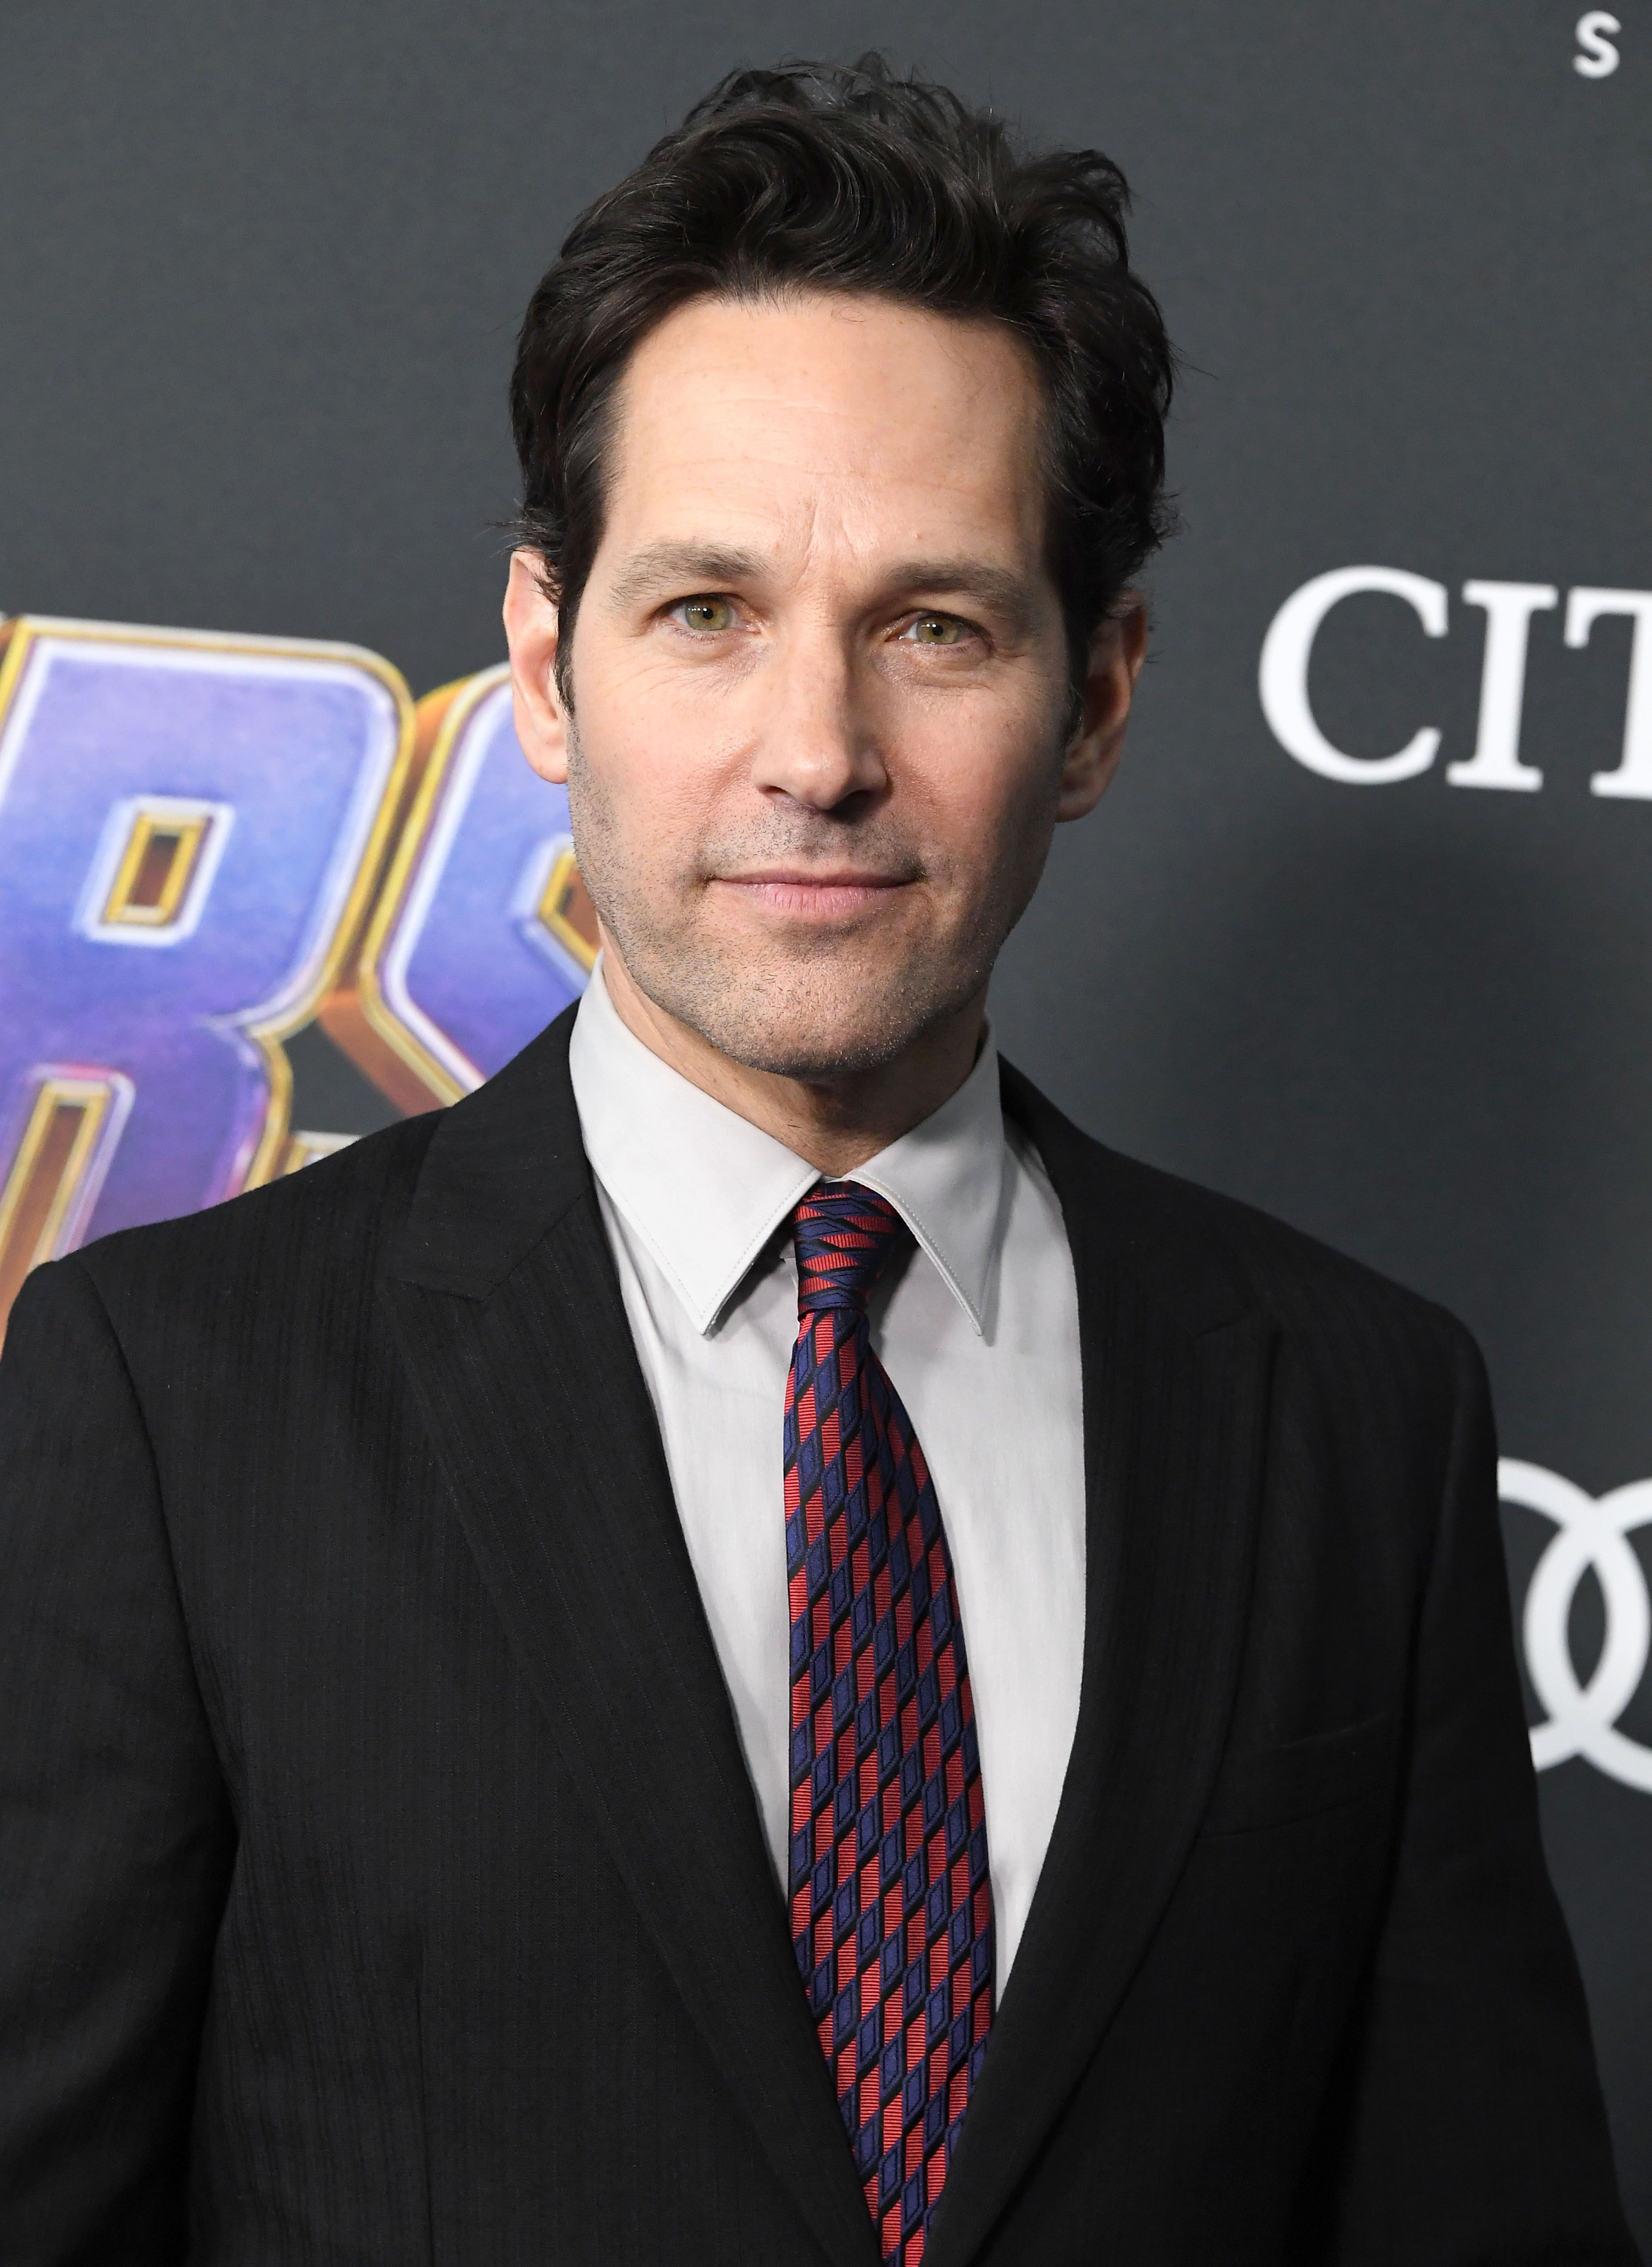 Ghostbusters director teases Marvel star Paul Rudd's character in new sequel